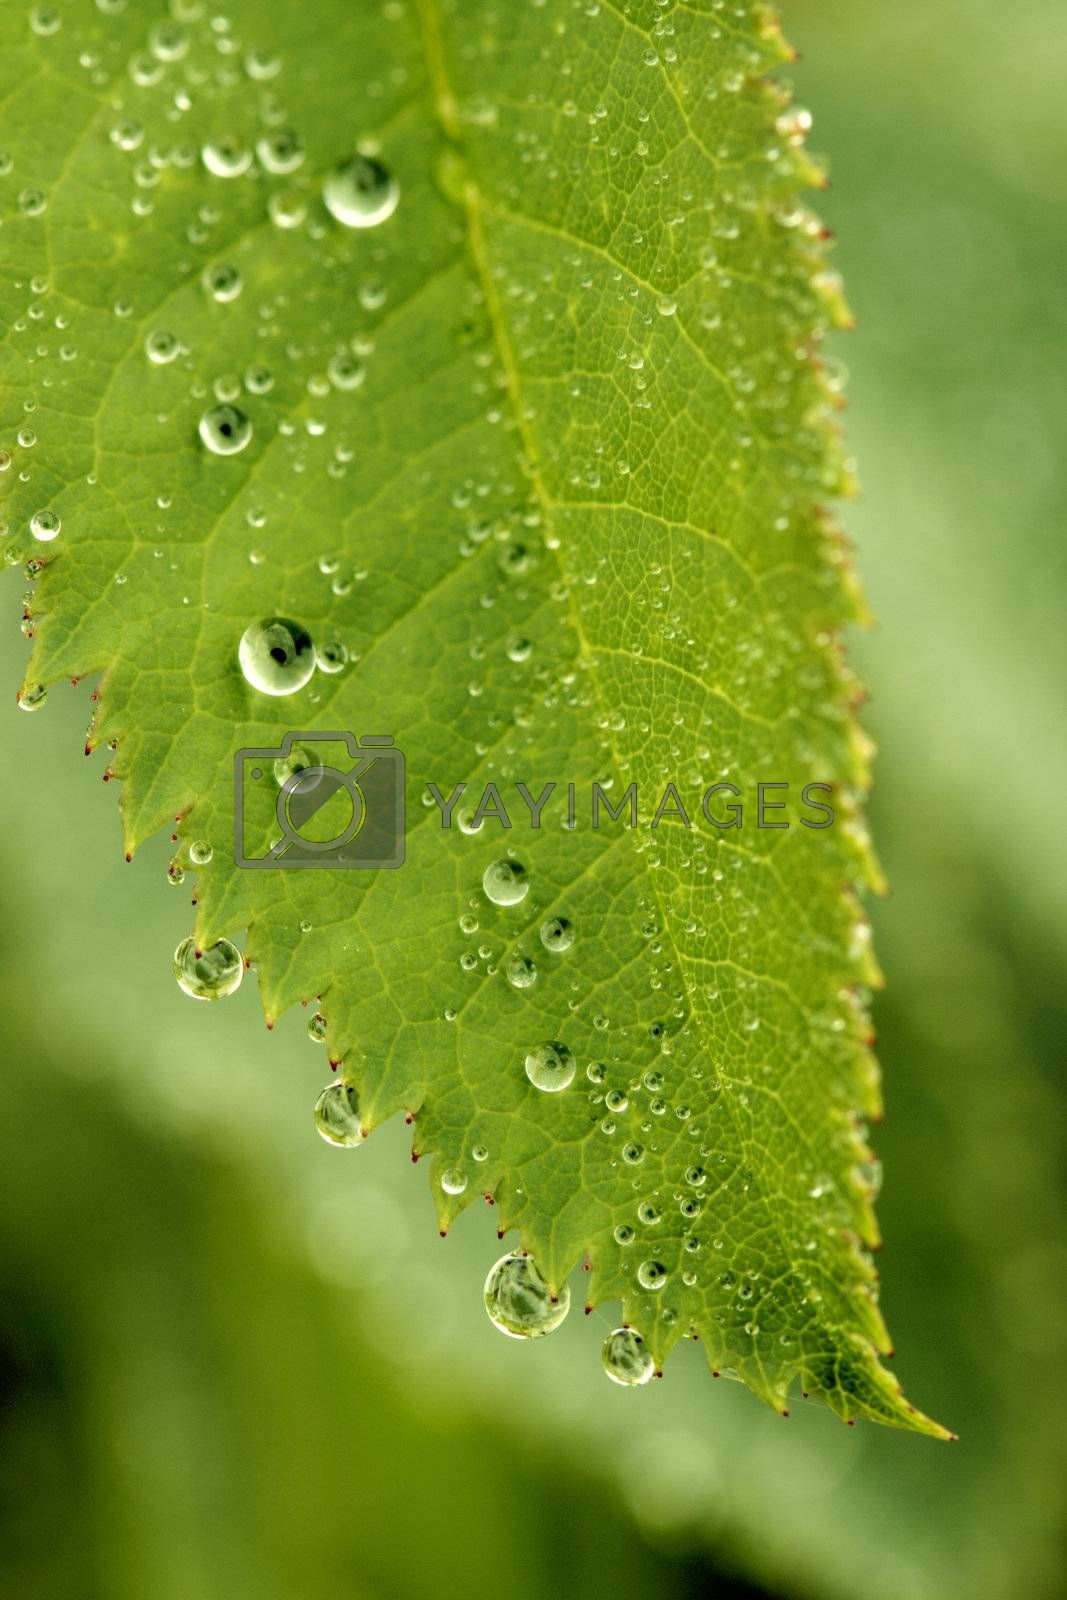 Macro shot of green leaf with water drops from dew and veins